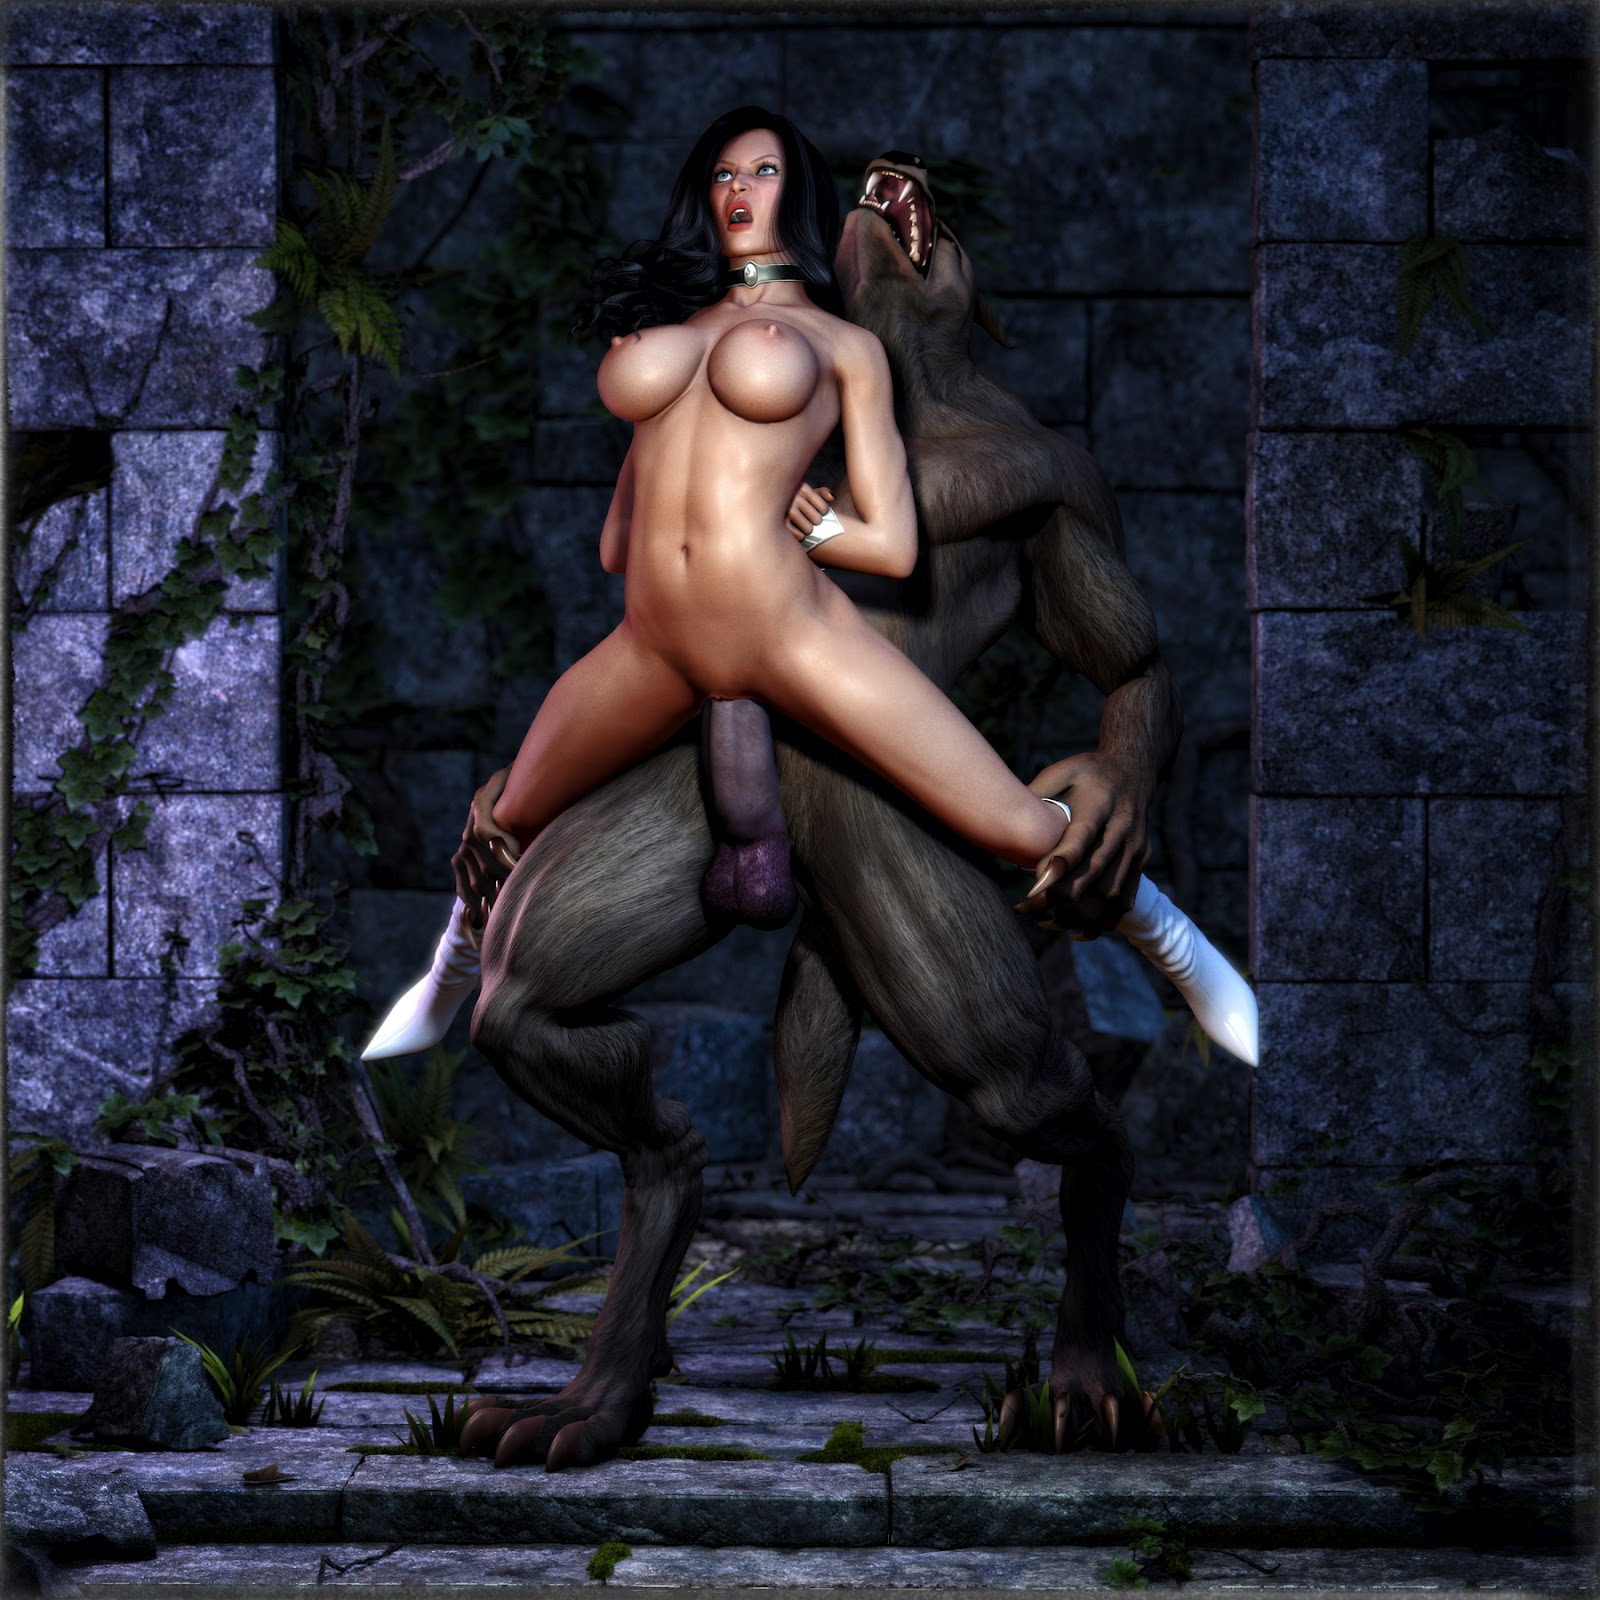 Human male and female werewolf porn porno tube